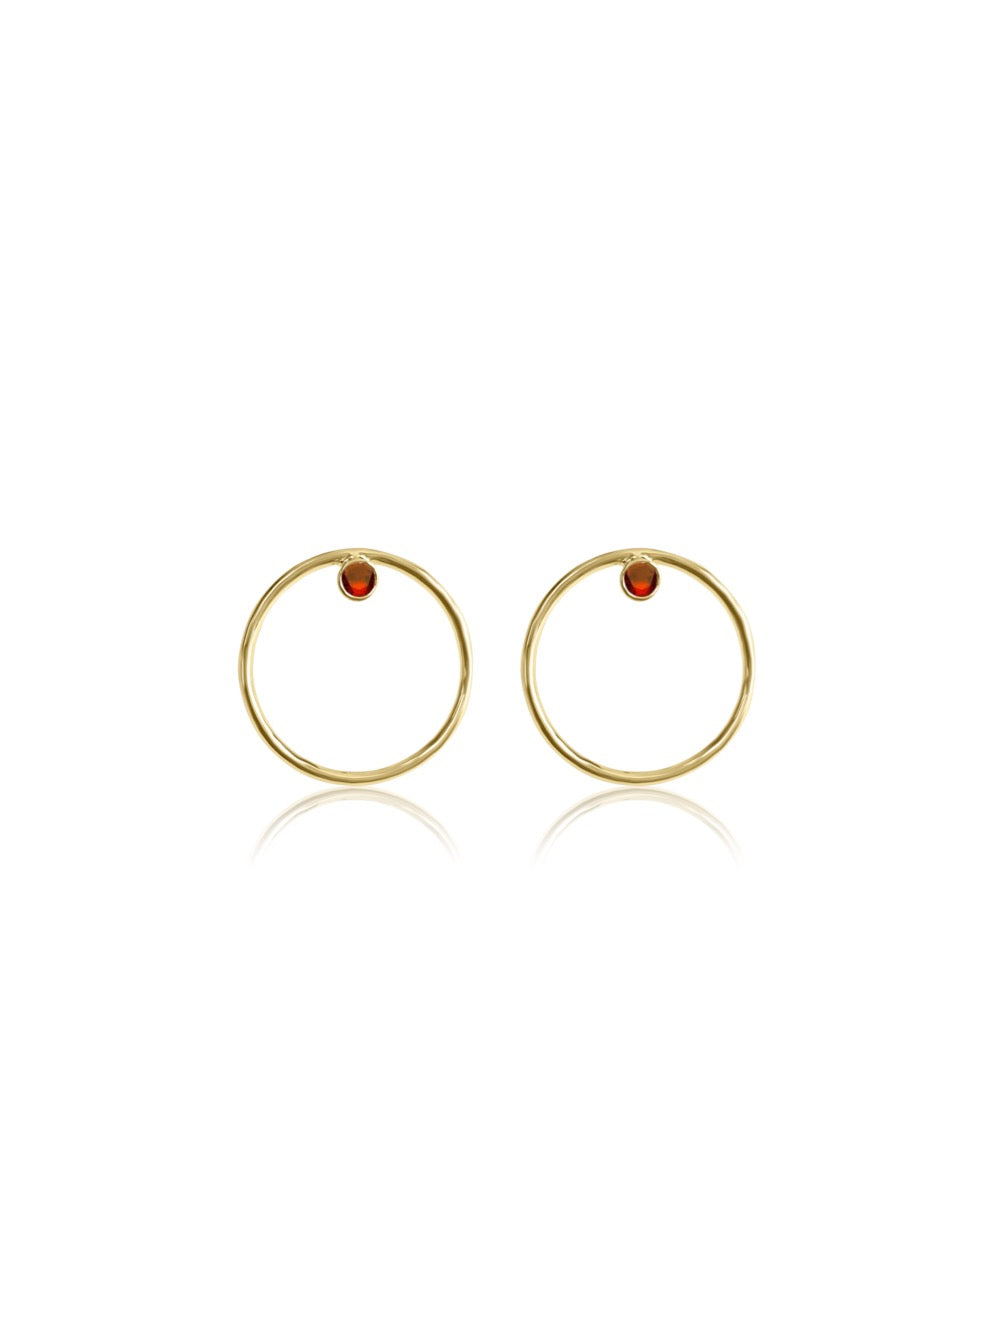 14K Gold Diamond/Gemstone Circle Earrings